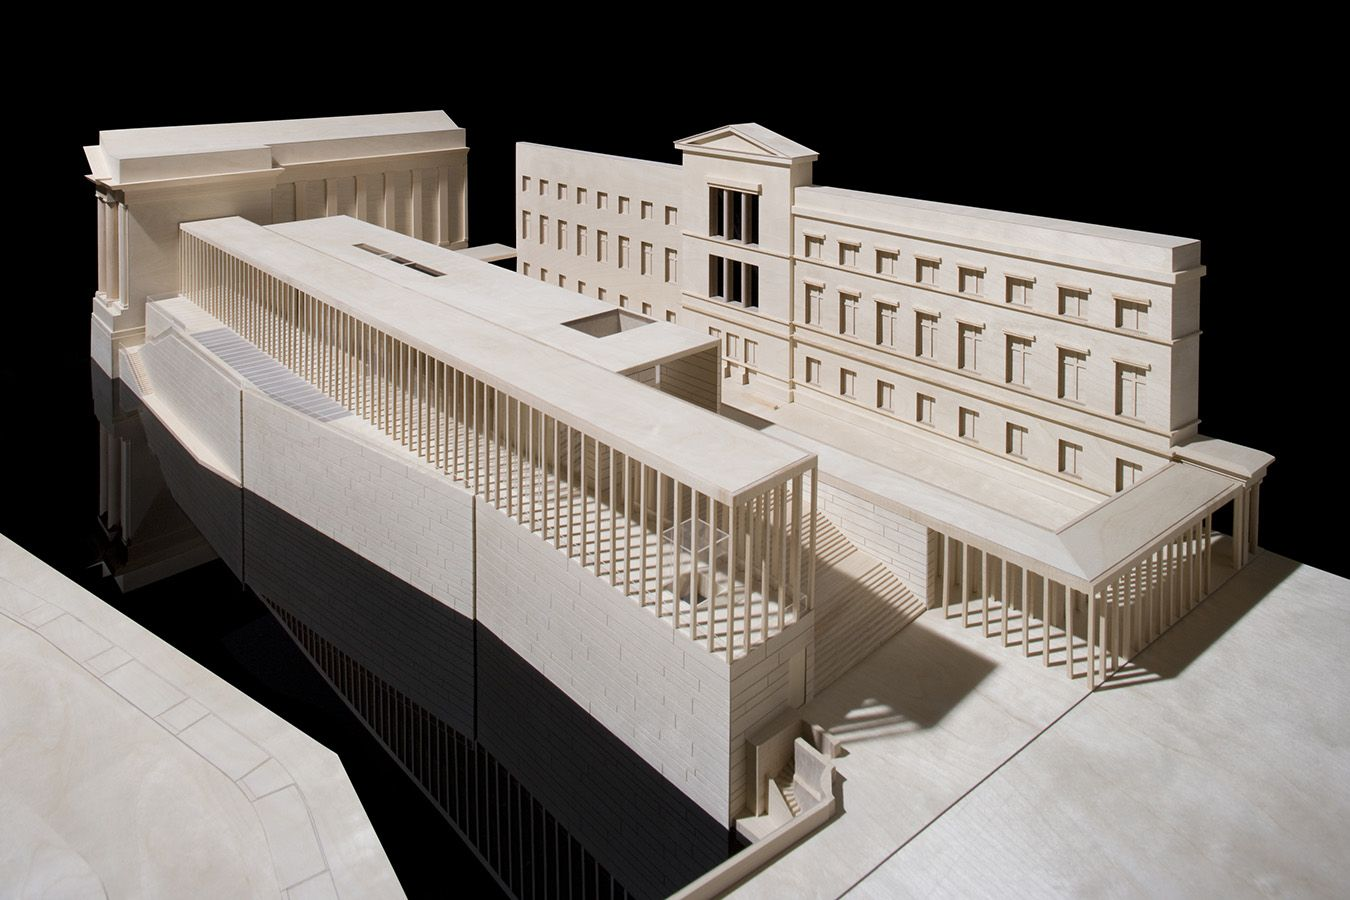 David Chipperfield Architects Founded In 1984 Has Four Offices In London Berlin Milan And Shangh David Chipperfield Architects Architecture Model Architect